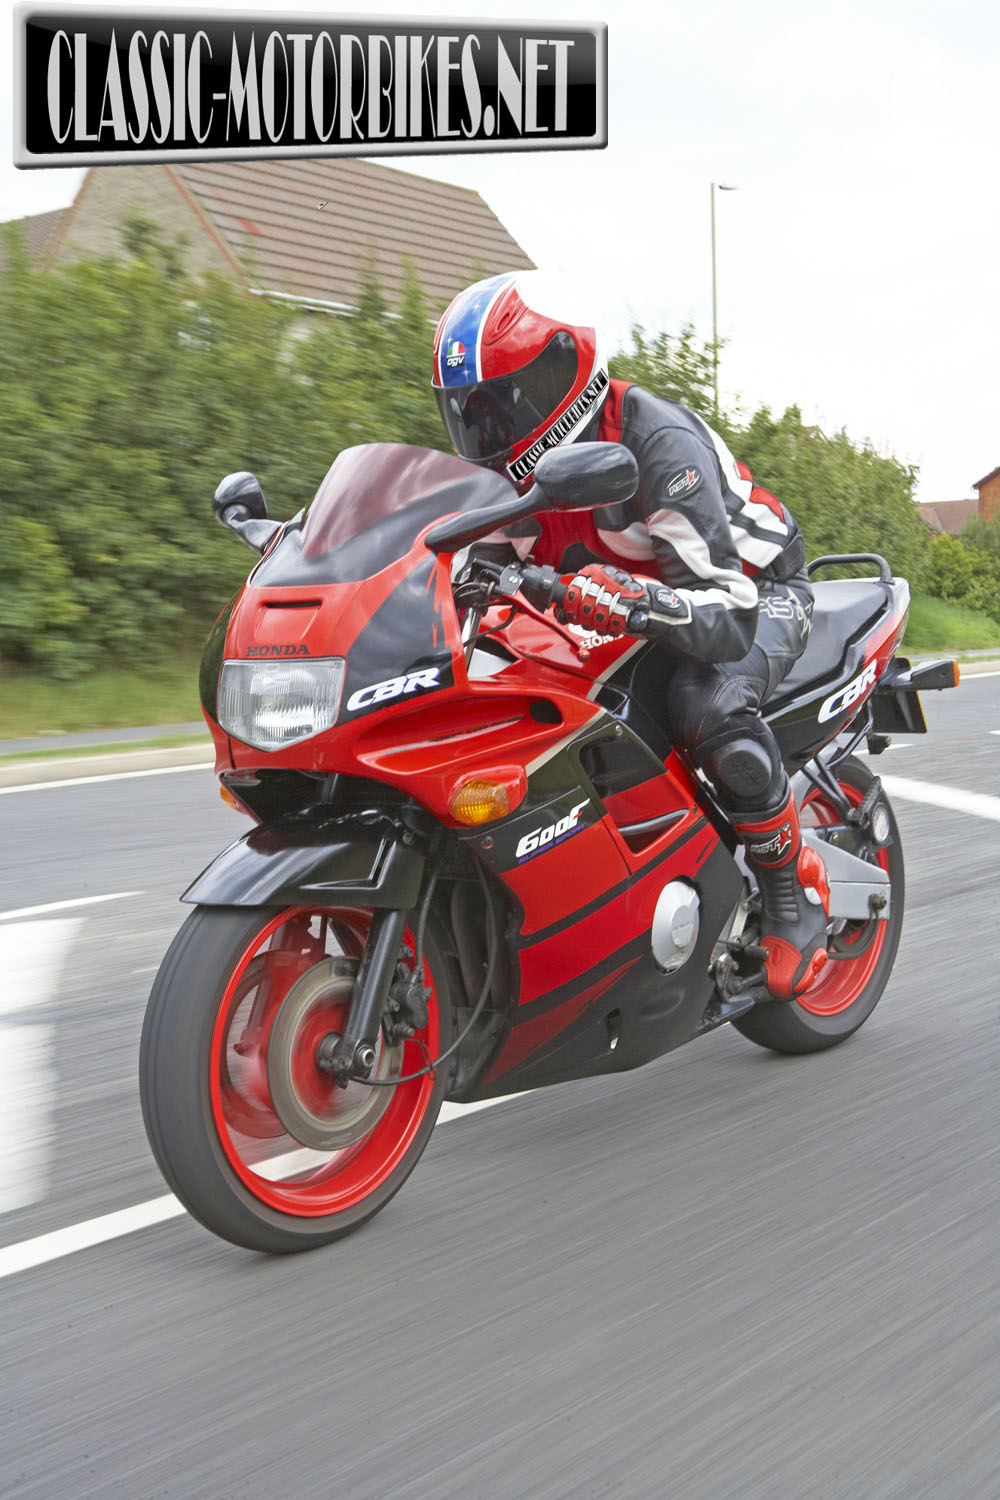 Honda Build And Price >> Honda CBR600F Road Test - Classic Motorbikes